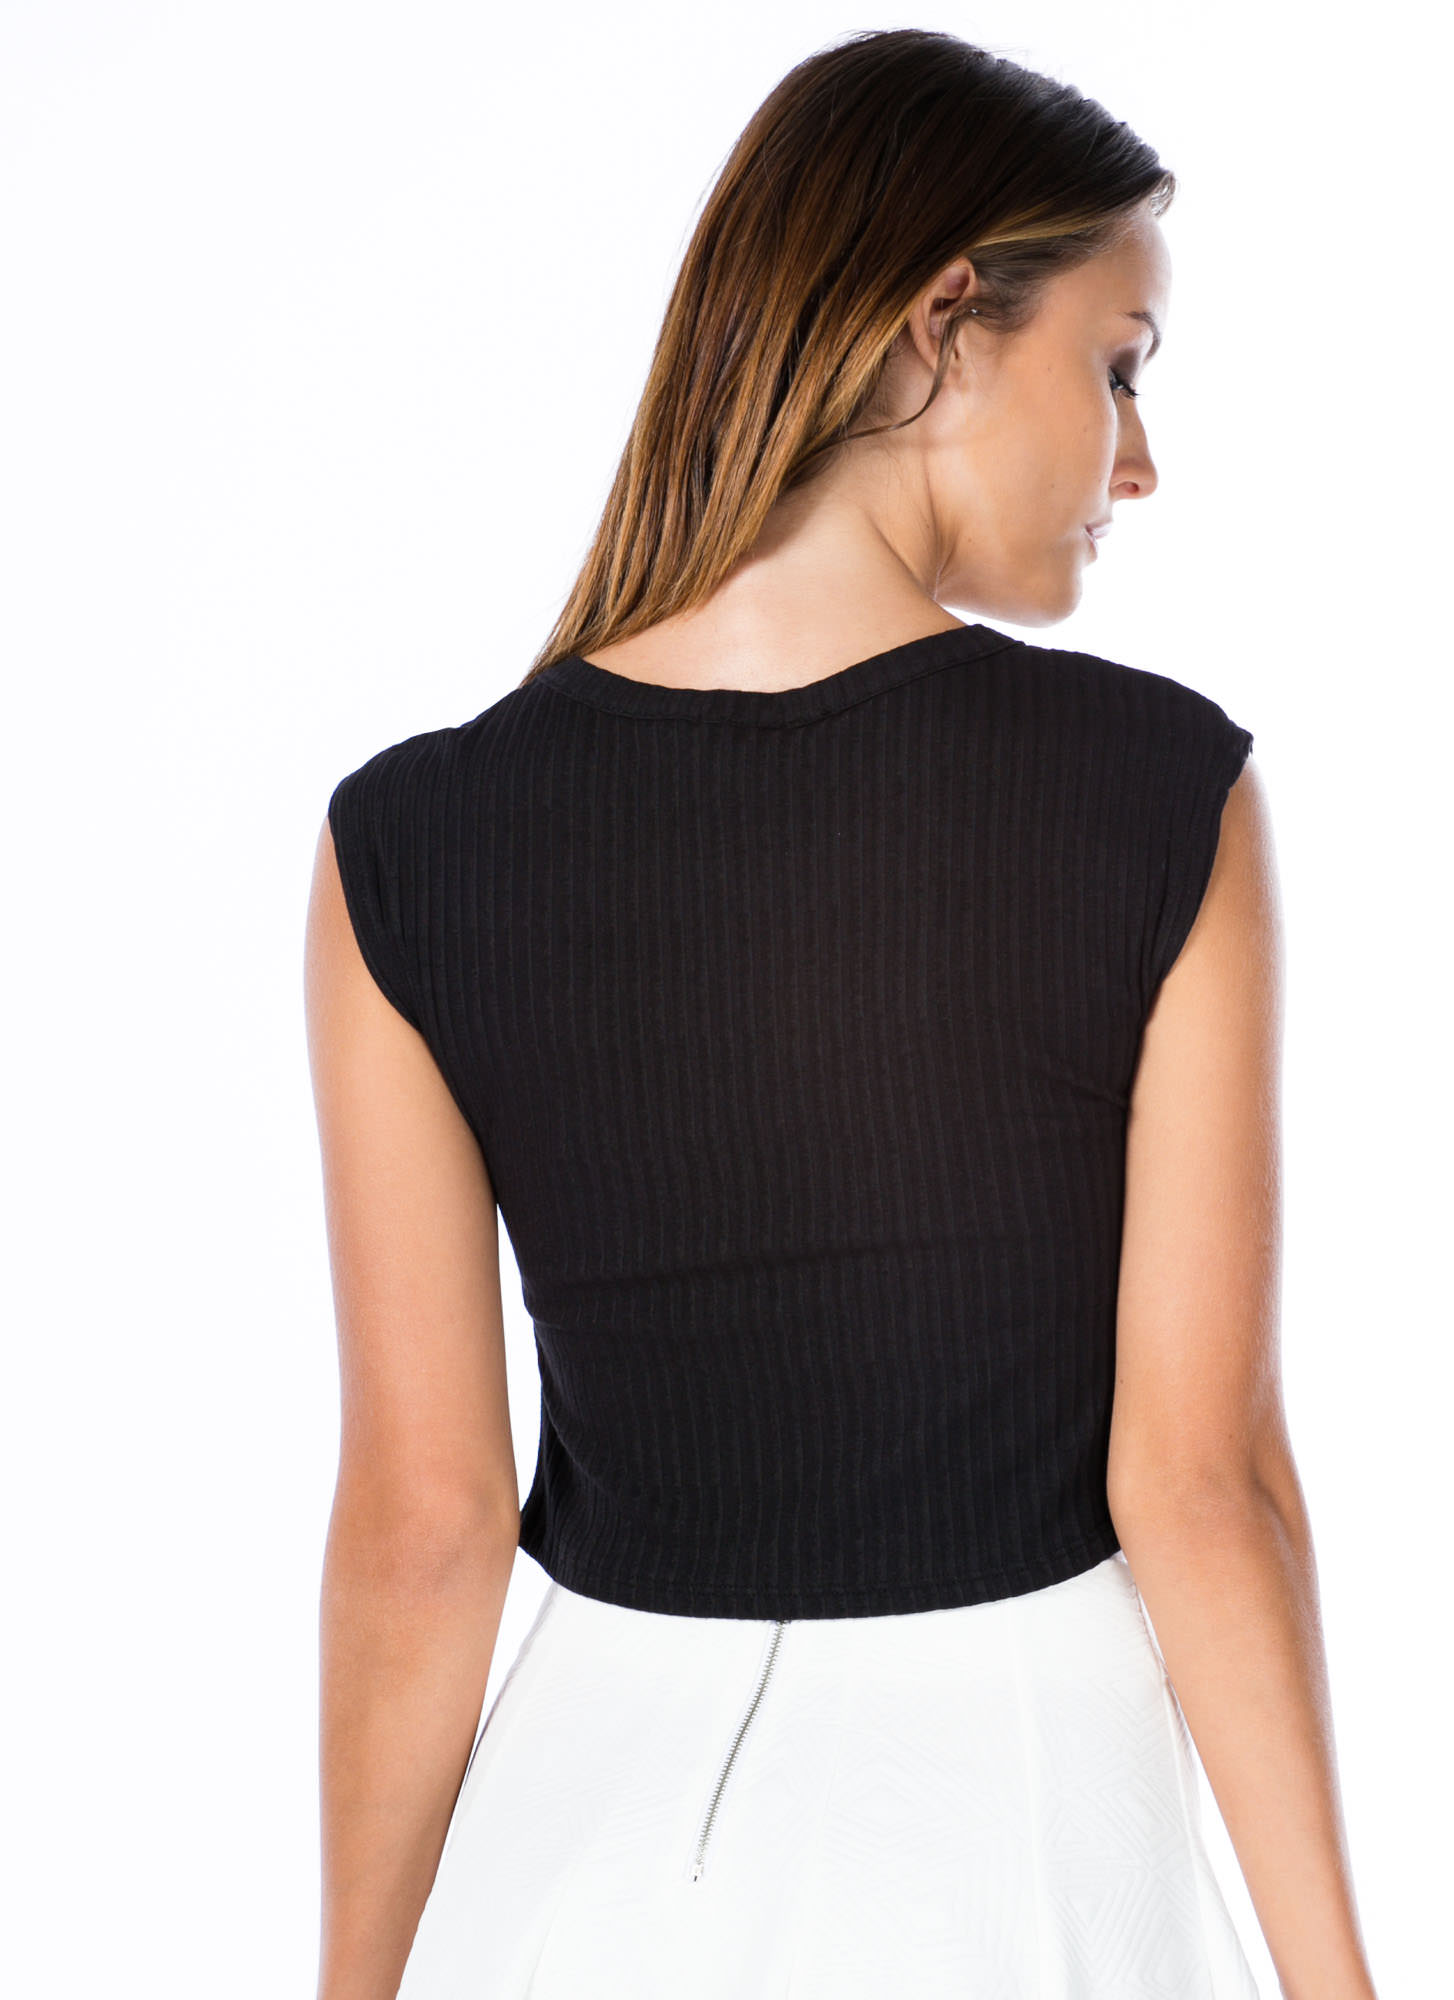 Tres Fatigue Cropped Top BLACK